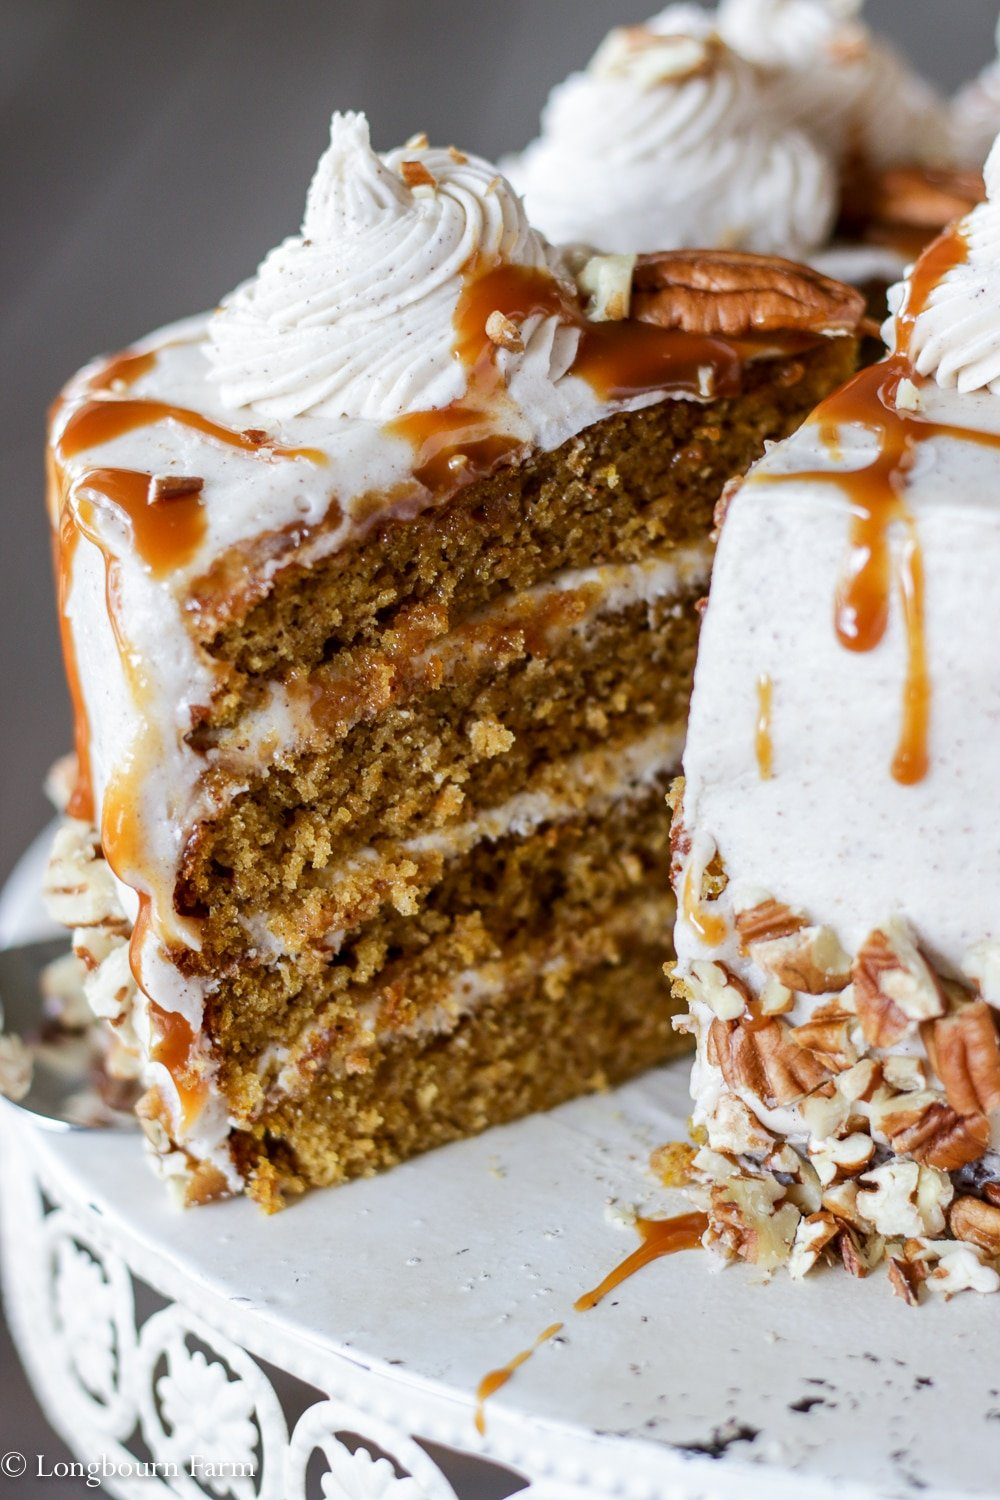 Pulling a slice of layered pumpkin spice cake out of the cake.